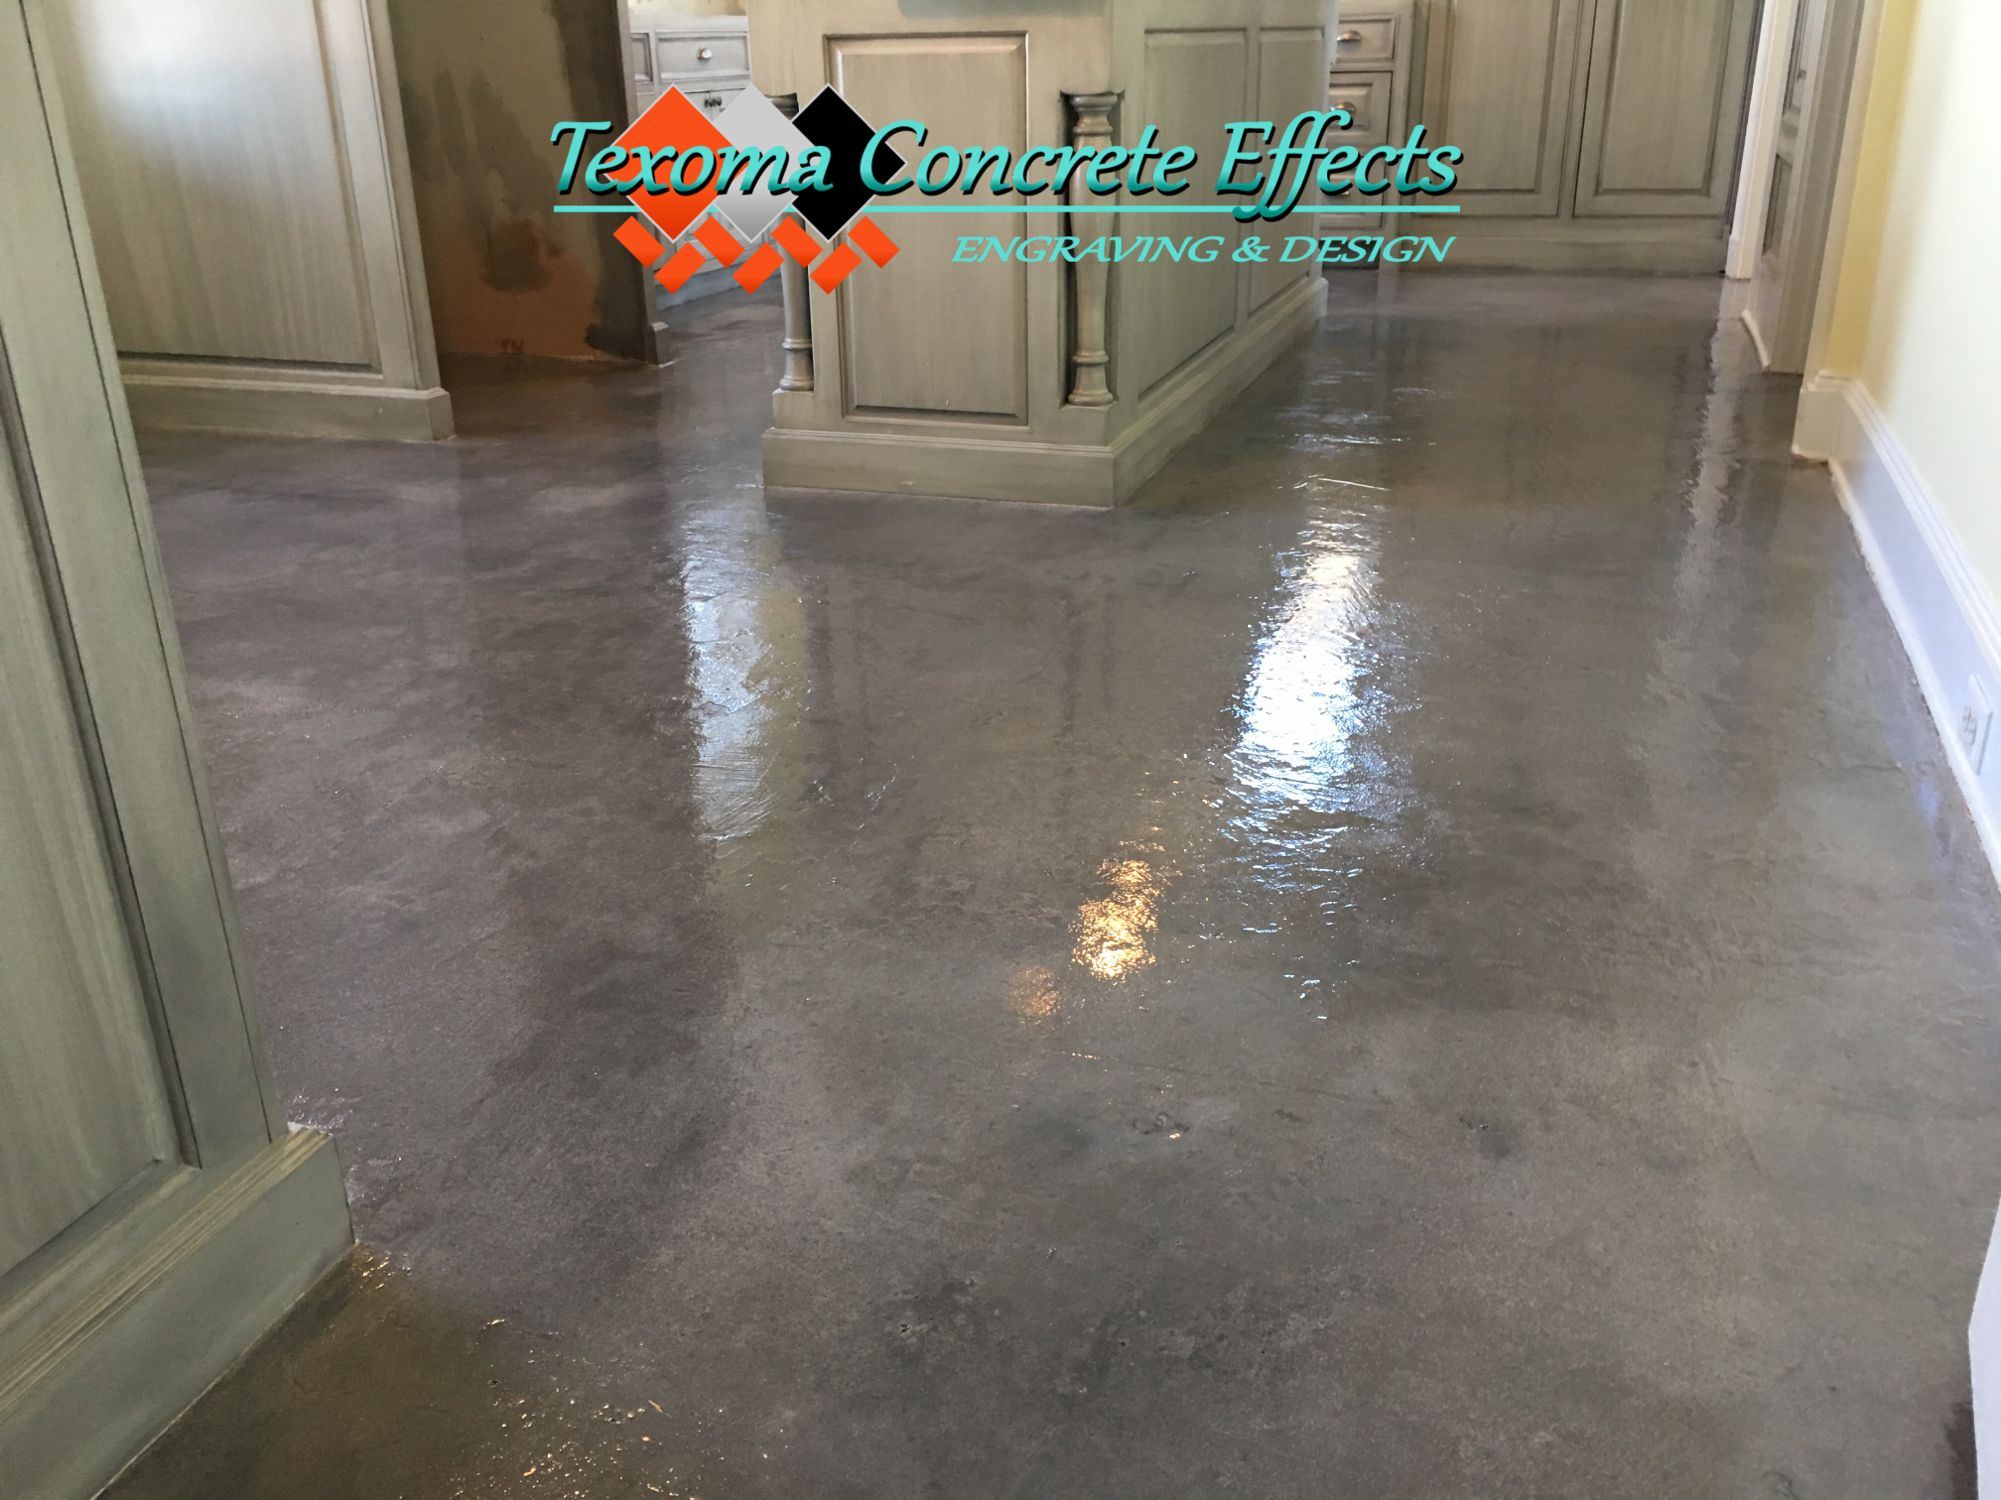 Concrete Overlay By Texoma Concrete Effects In Wichita Falls Tx Concrete Overlay Concrete Overlays